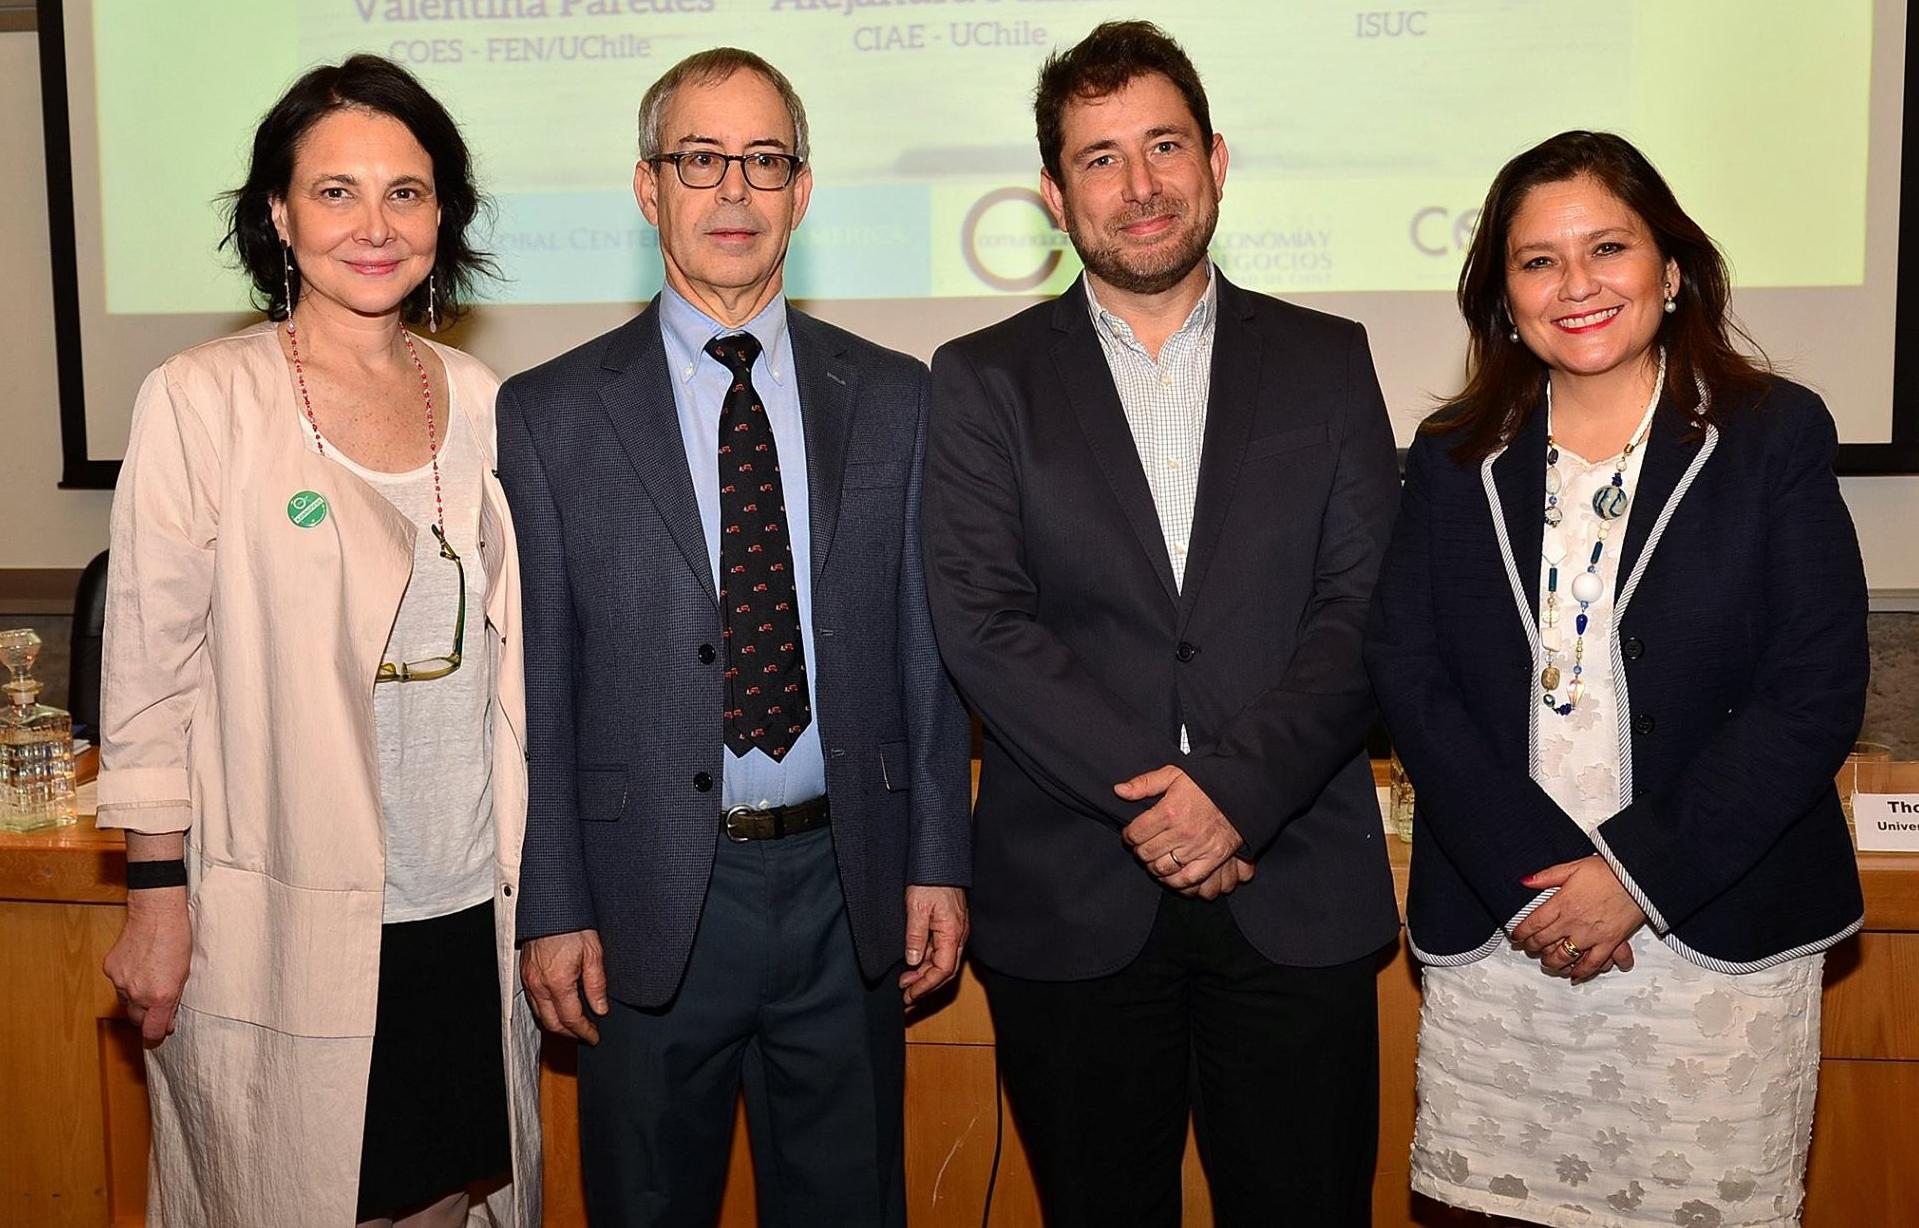 Karen Poniachik (Santiago Global Centers Director), Thomas DiPrete ( Giddins Professor of Sociology, and Co-Director, Institute for Social and Economic Research and Policy at Columbia University) Daniel Hojman (COES) y Alejandra Sepúlveda (ComunidadMujer).